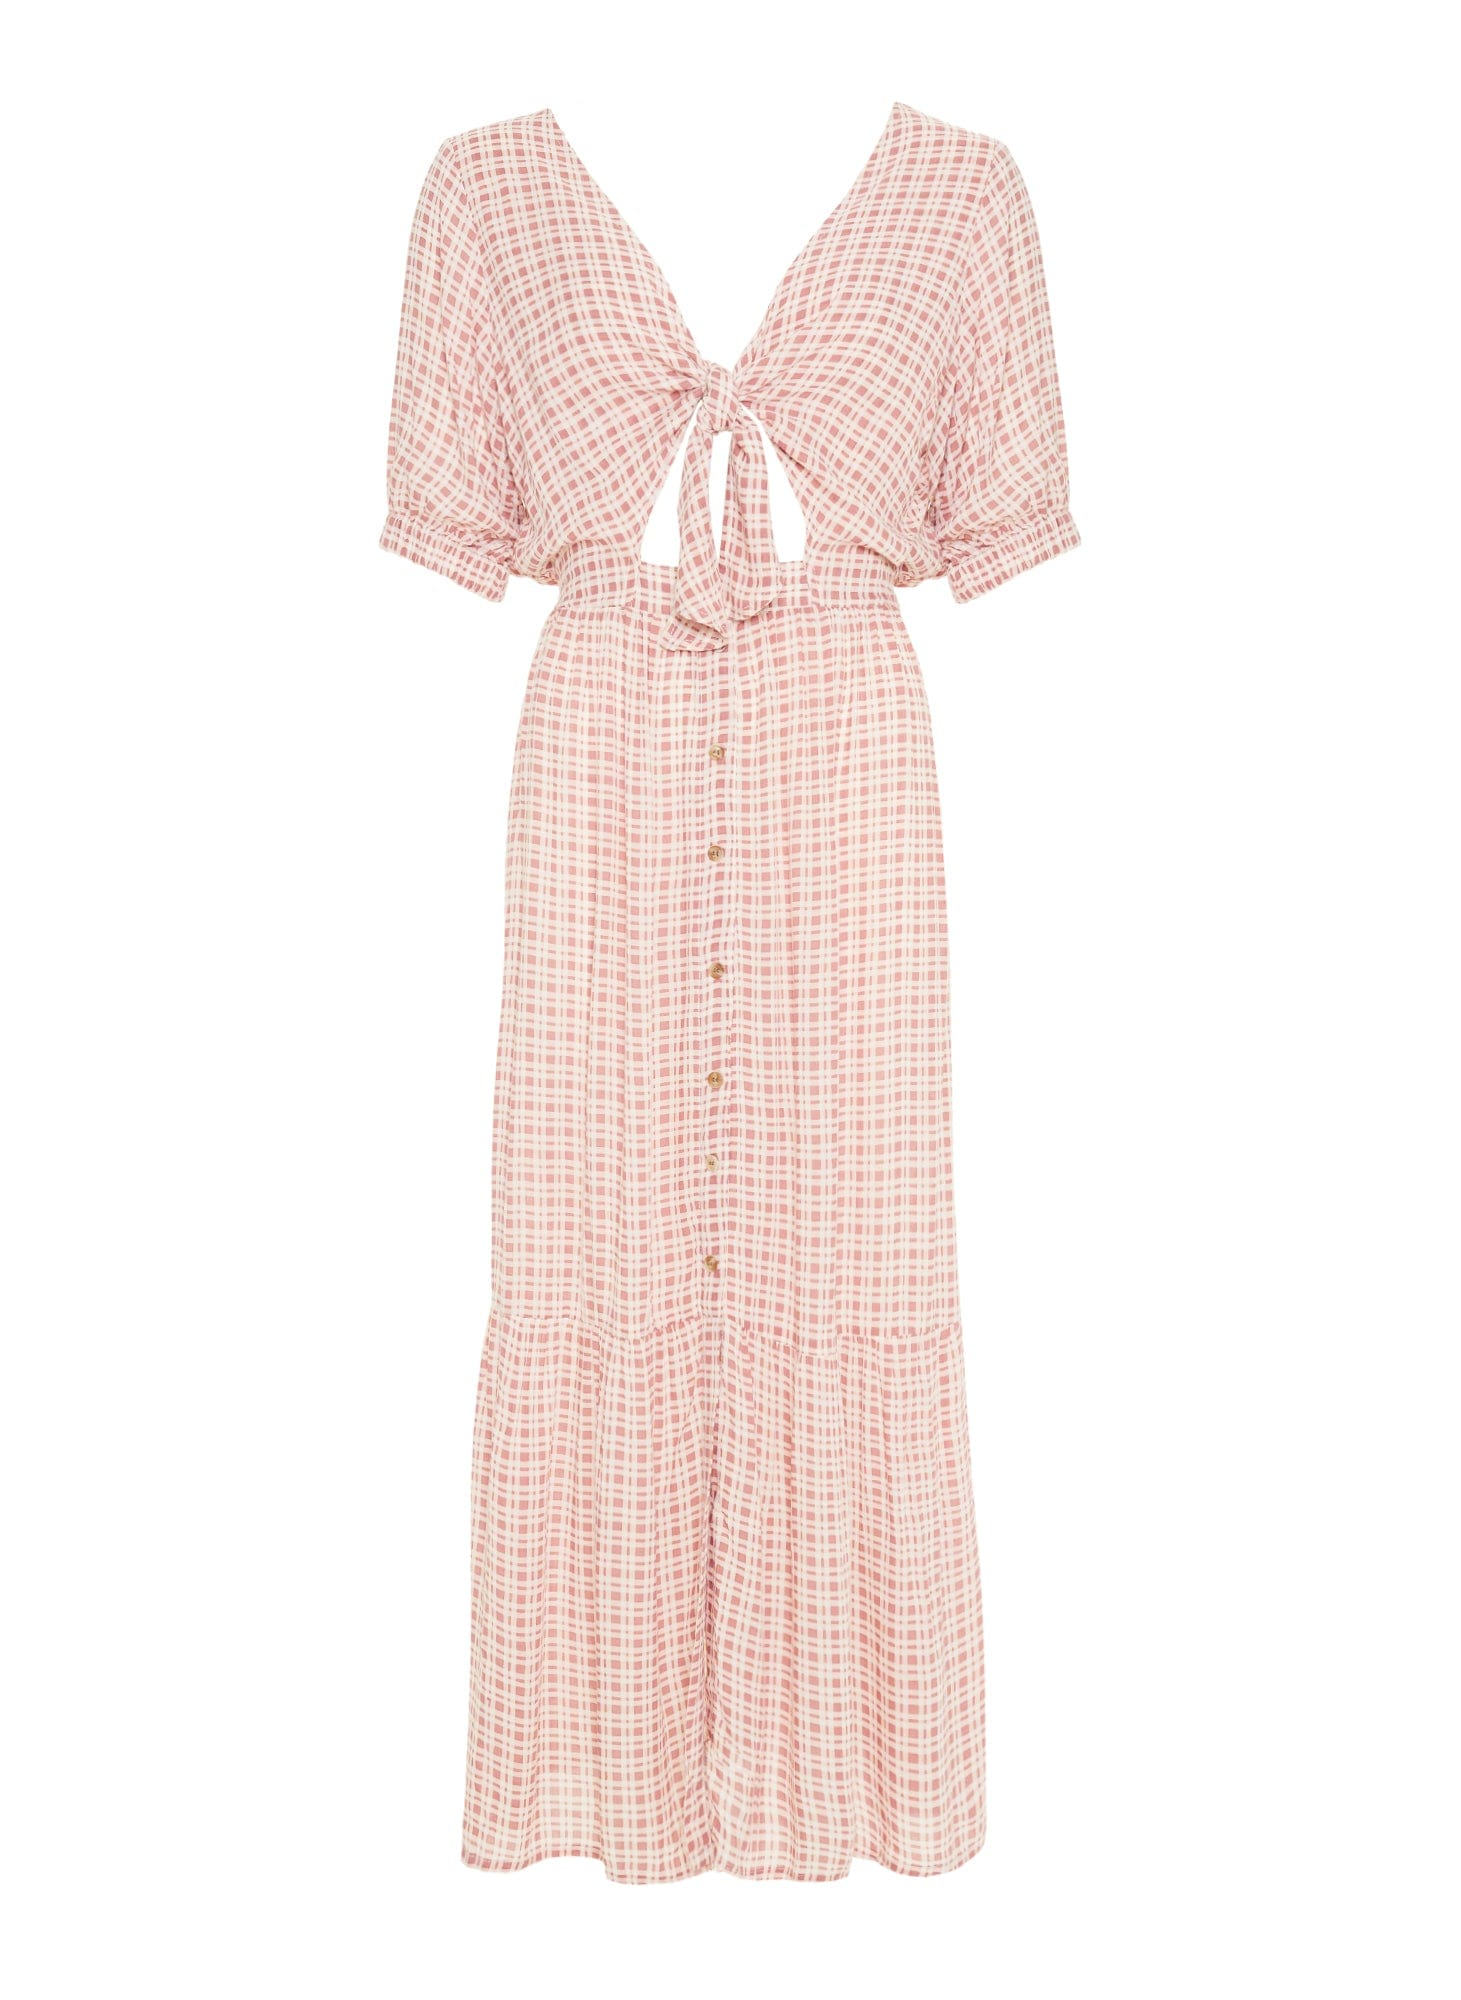 EMILINAH CHECK PRINT - VINTAGE PINK - MAPLE MIDI DRESS